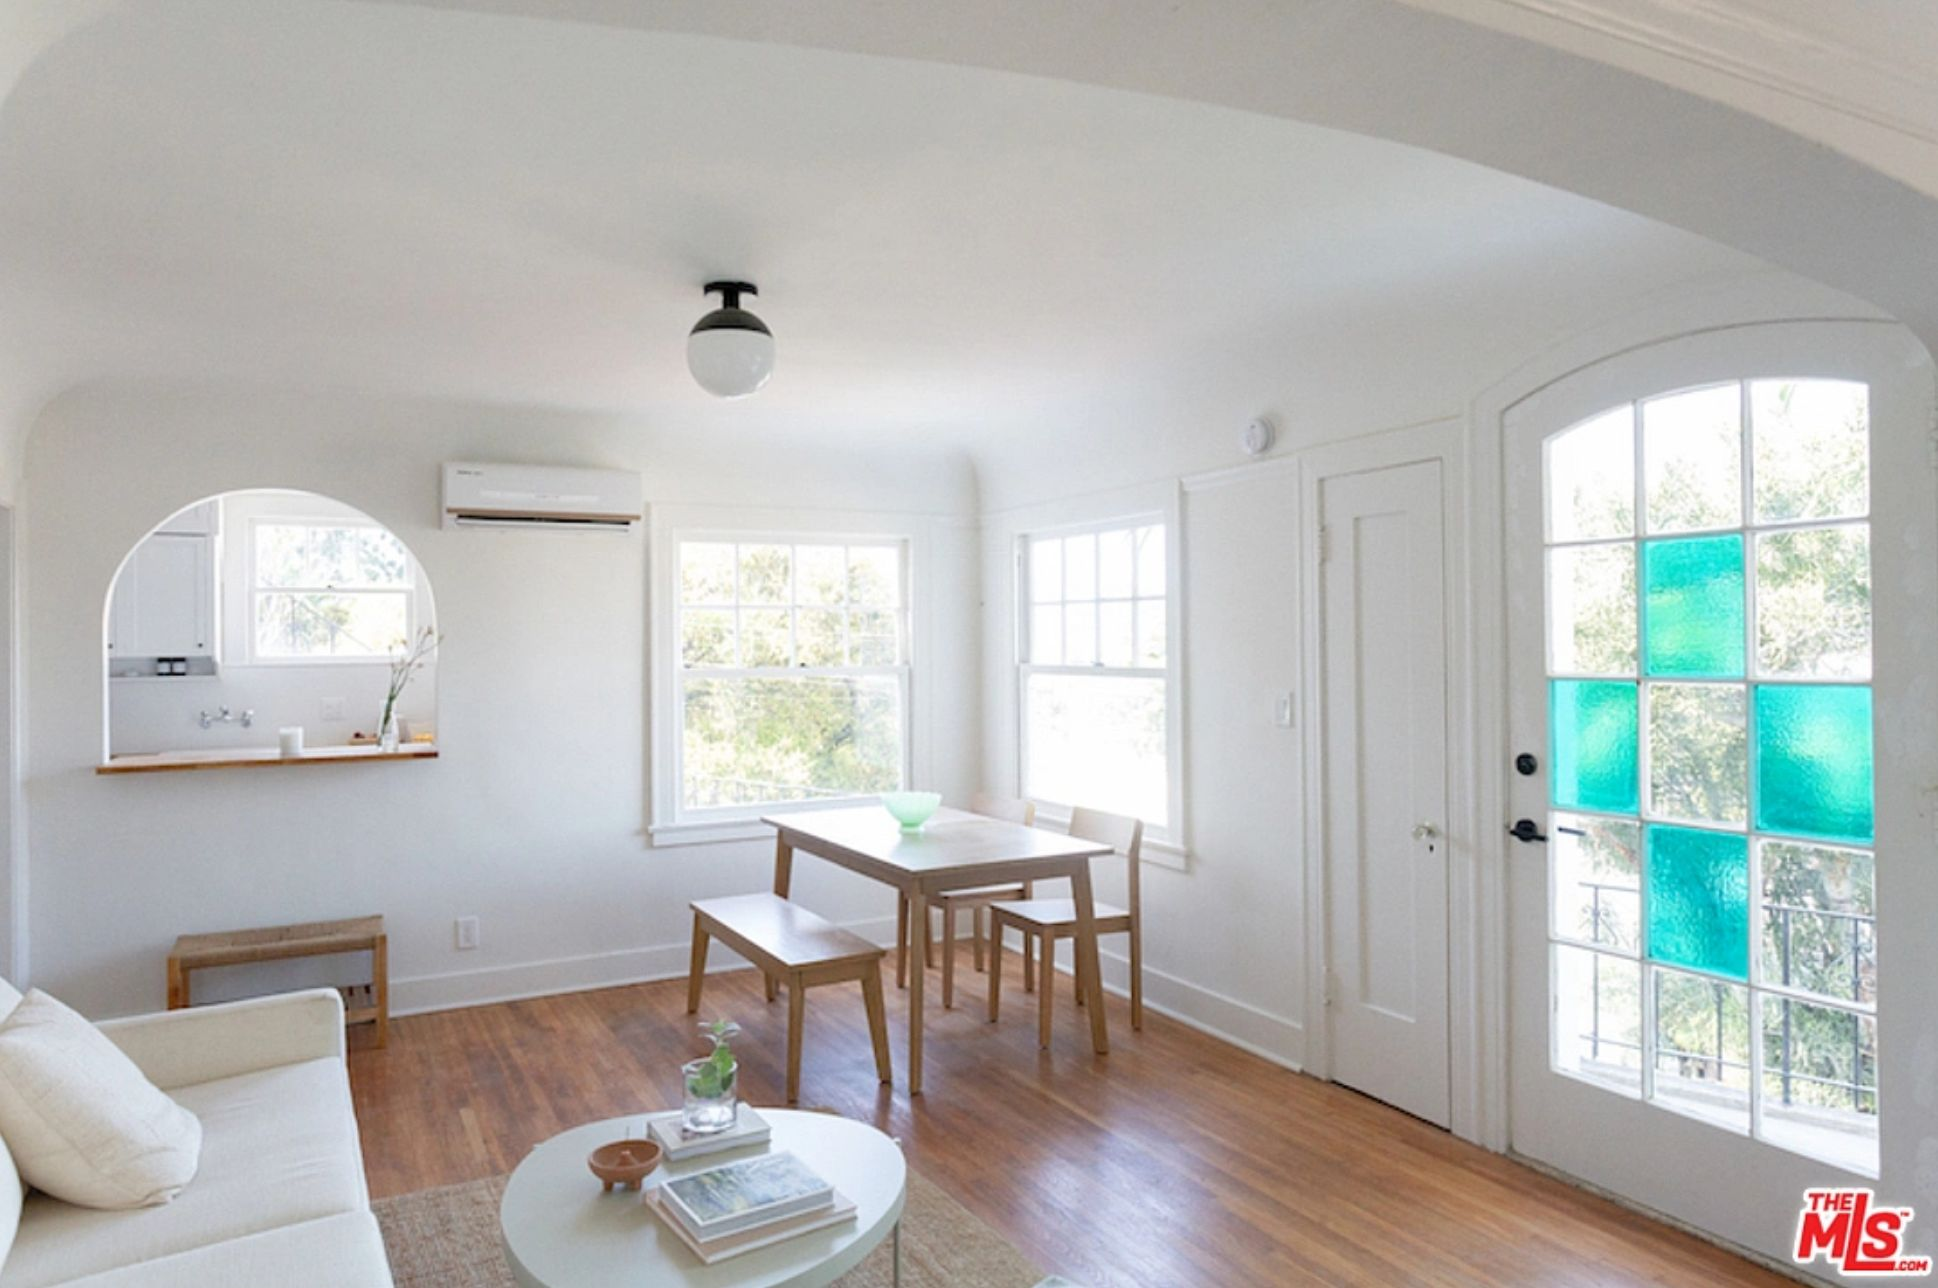 11 Los Angeles starter homes you can buy right now for ... Zillow Bathroom Designs With Columns on economy bathroom designs, amazon bathroom designs, google bathroom designs, msn bathroom designs, hgtv bathroom designs, home bathroom designs, target bathroom designs, seattle bathroom designs, pinterest bathroom designs, walmart bathroom designs, 1 2 bathroom designs, family bathroom designs,